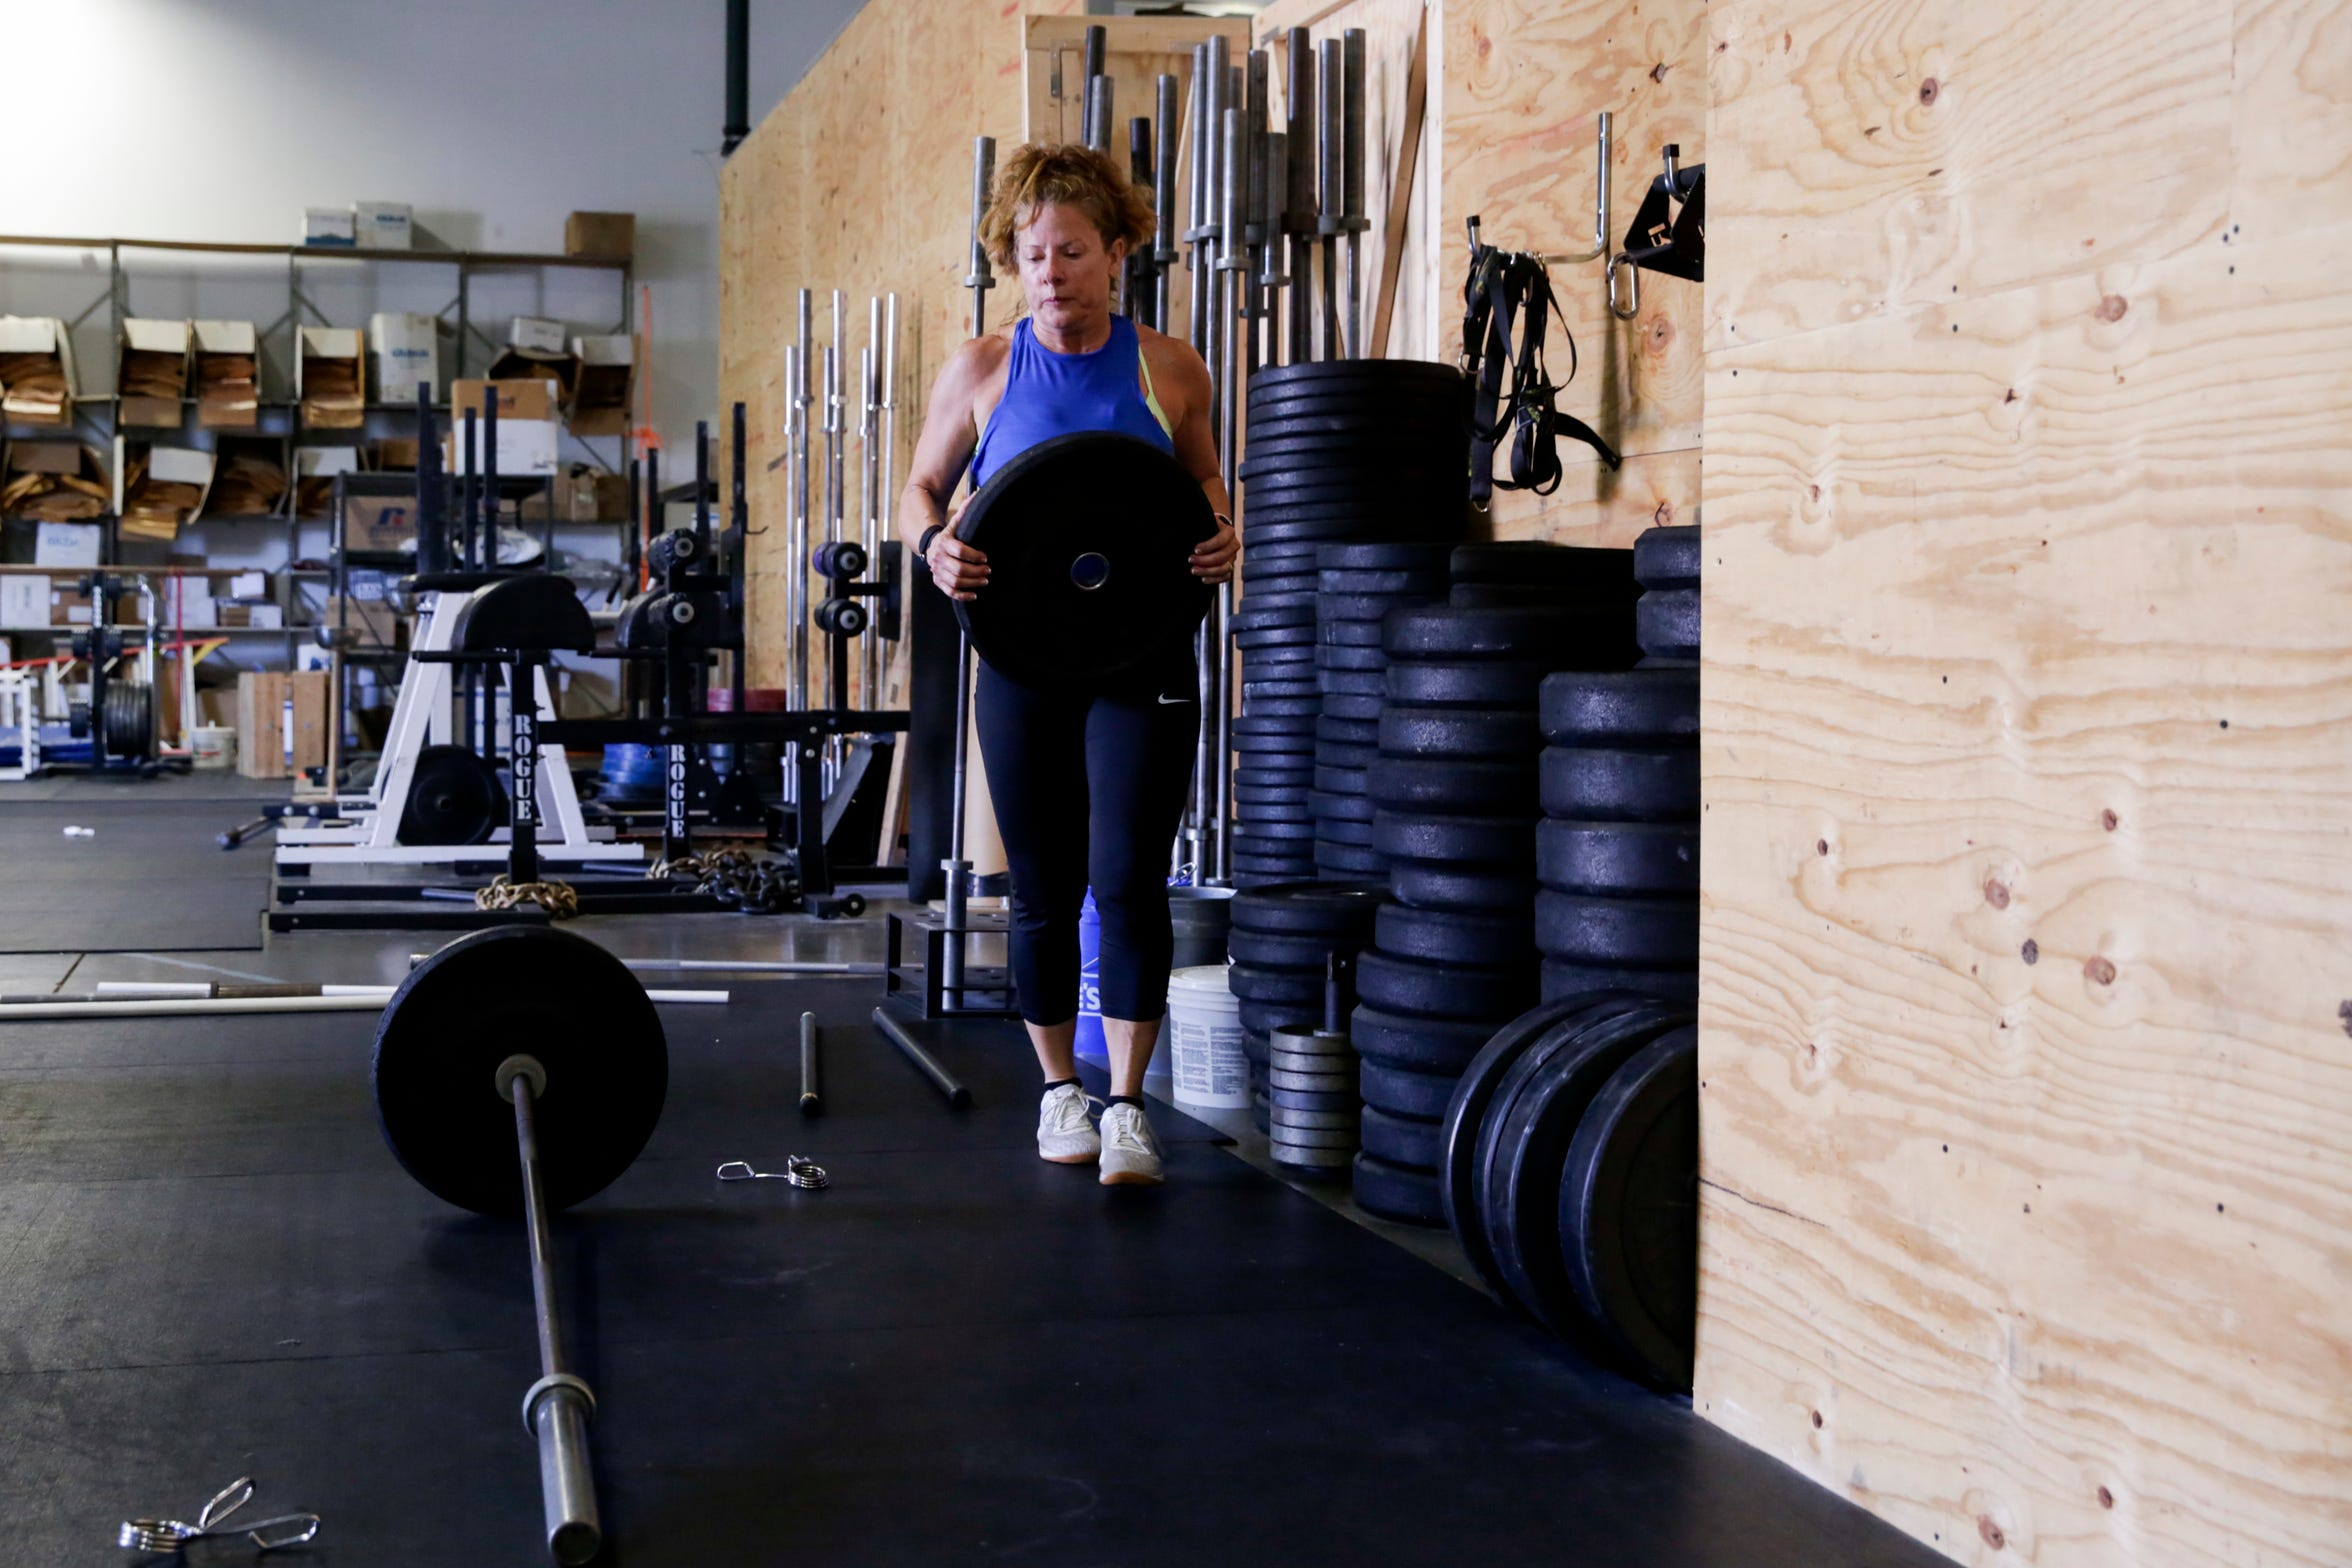 Julie Holt works out at Crossfit Uncommon, Wednesday, July 24, 2019 in Lafayette.